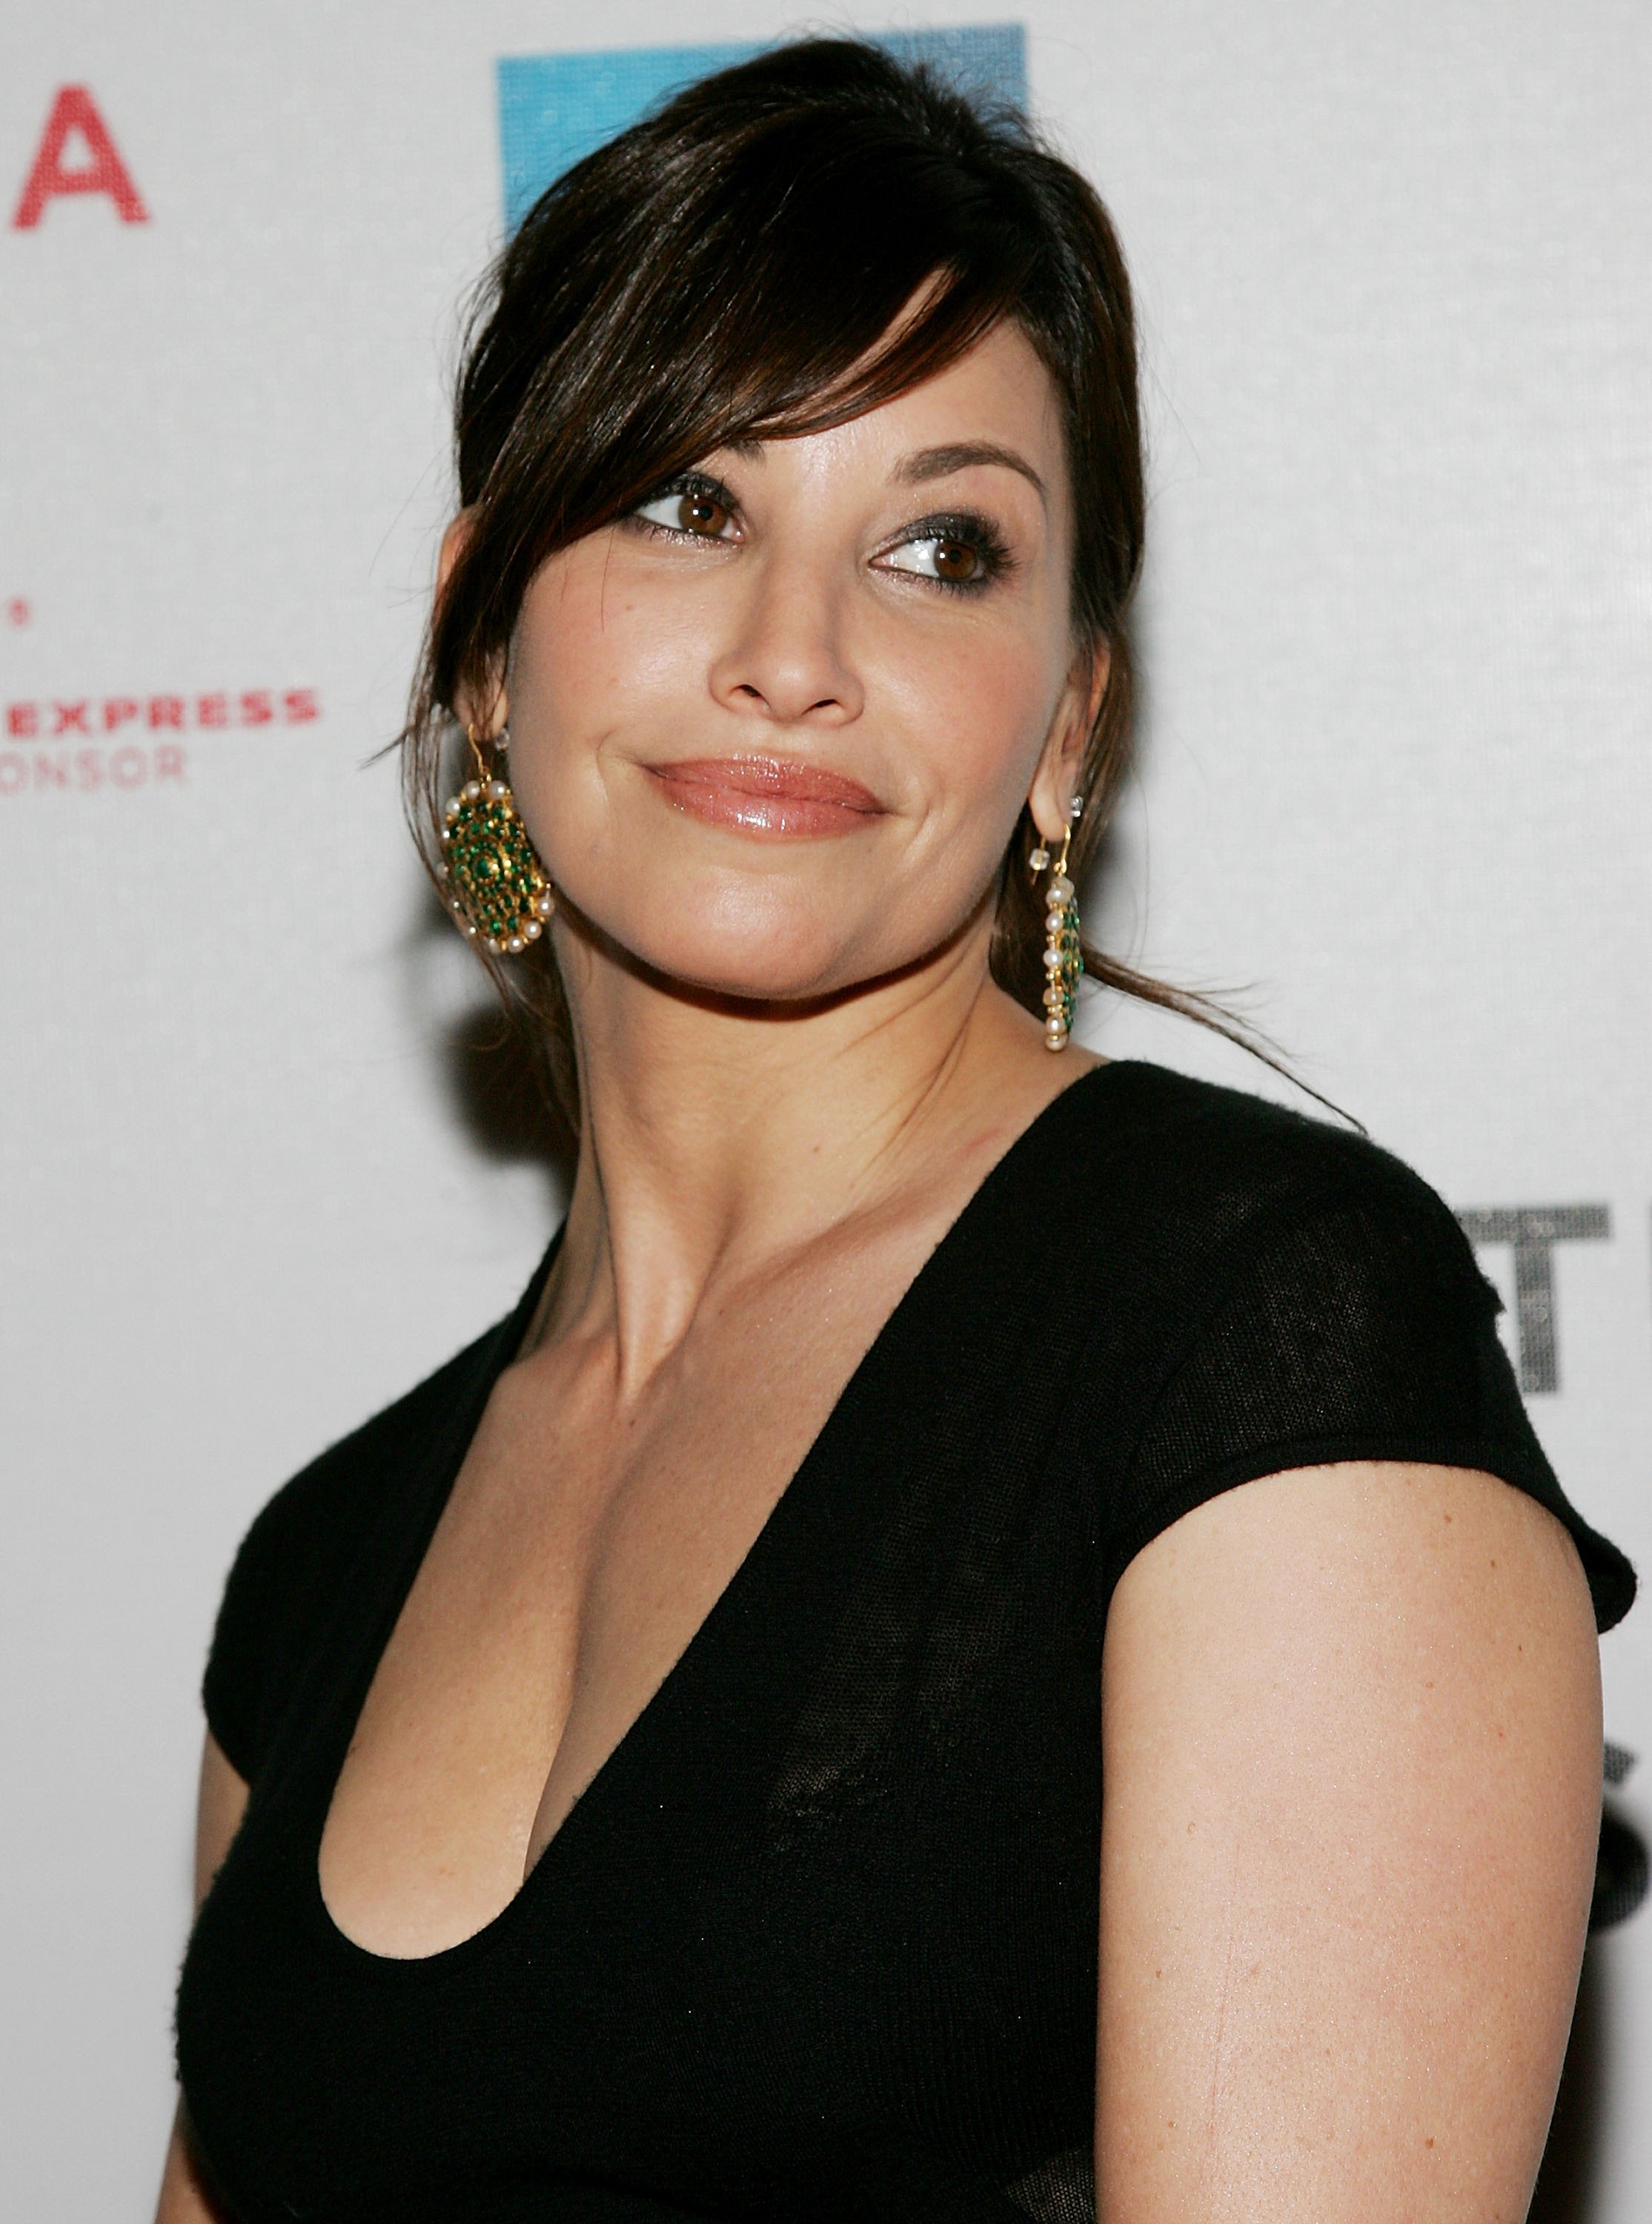 Gina Gershon Plastic Surgery Before And After Photos